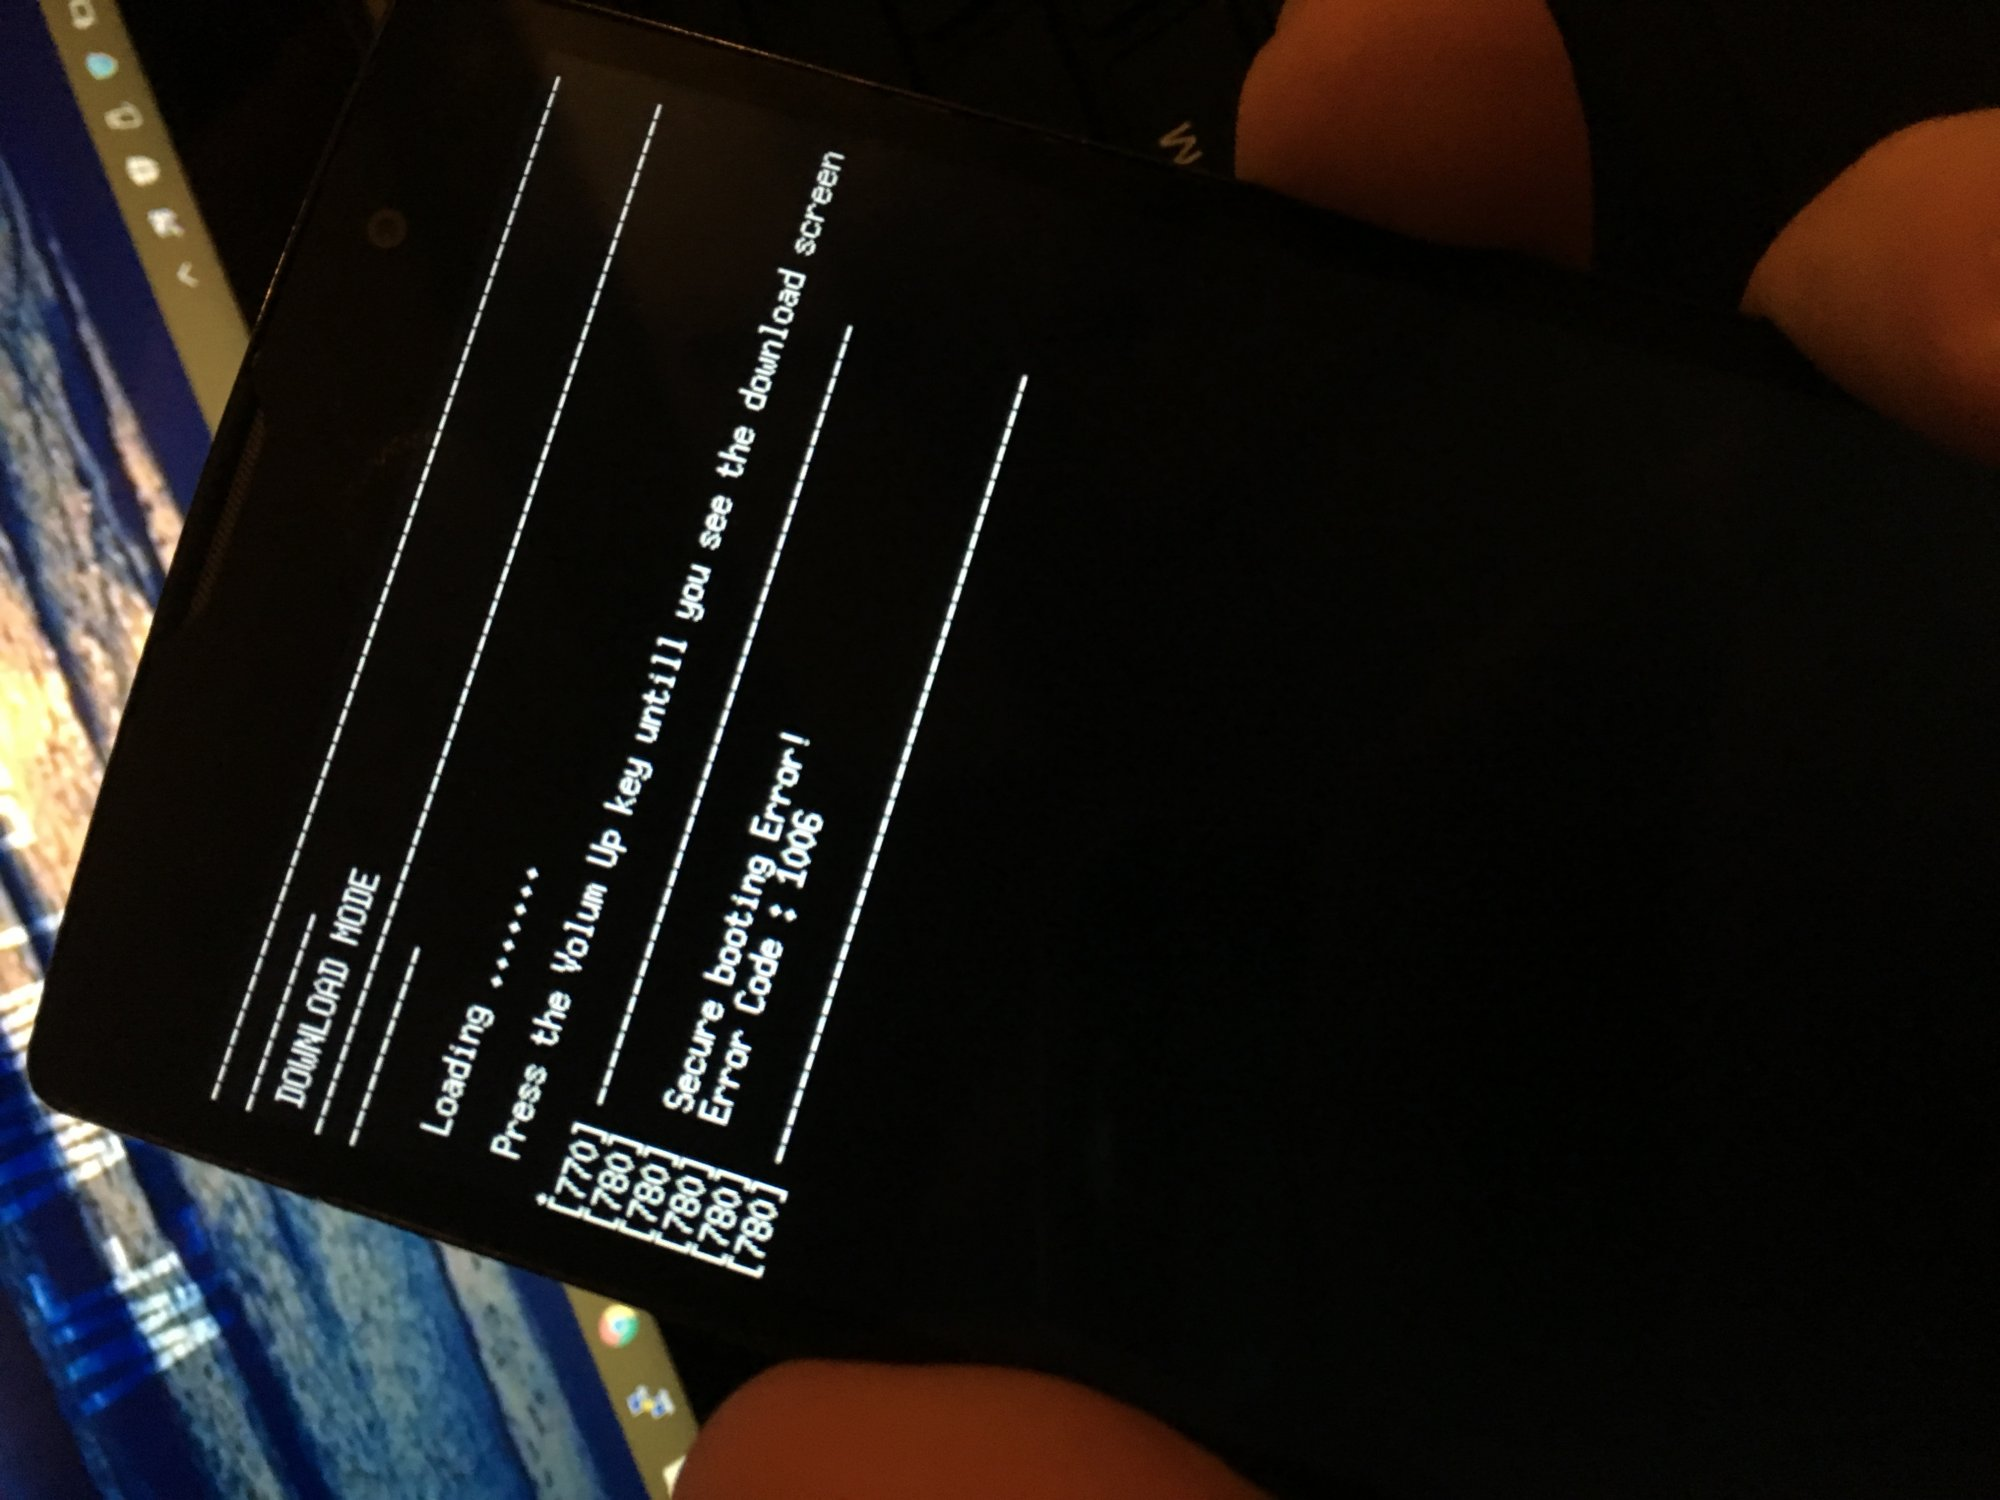 Bricked? - LG Volt 2 | Android Forums